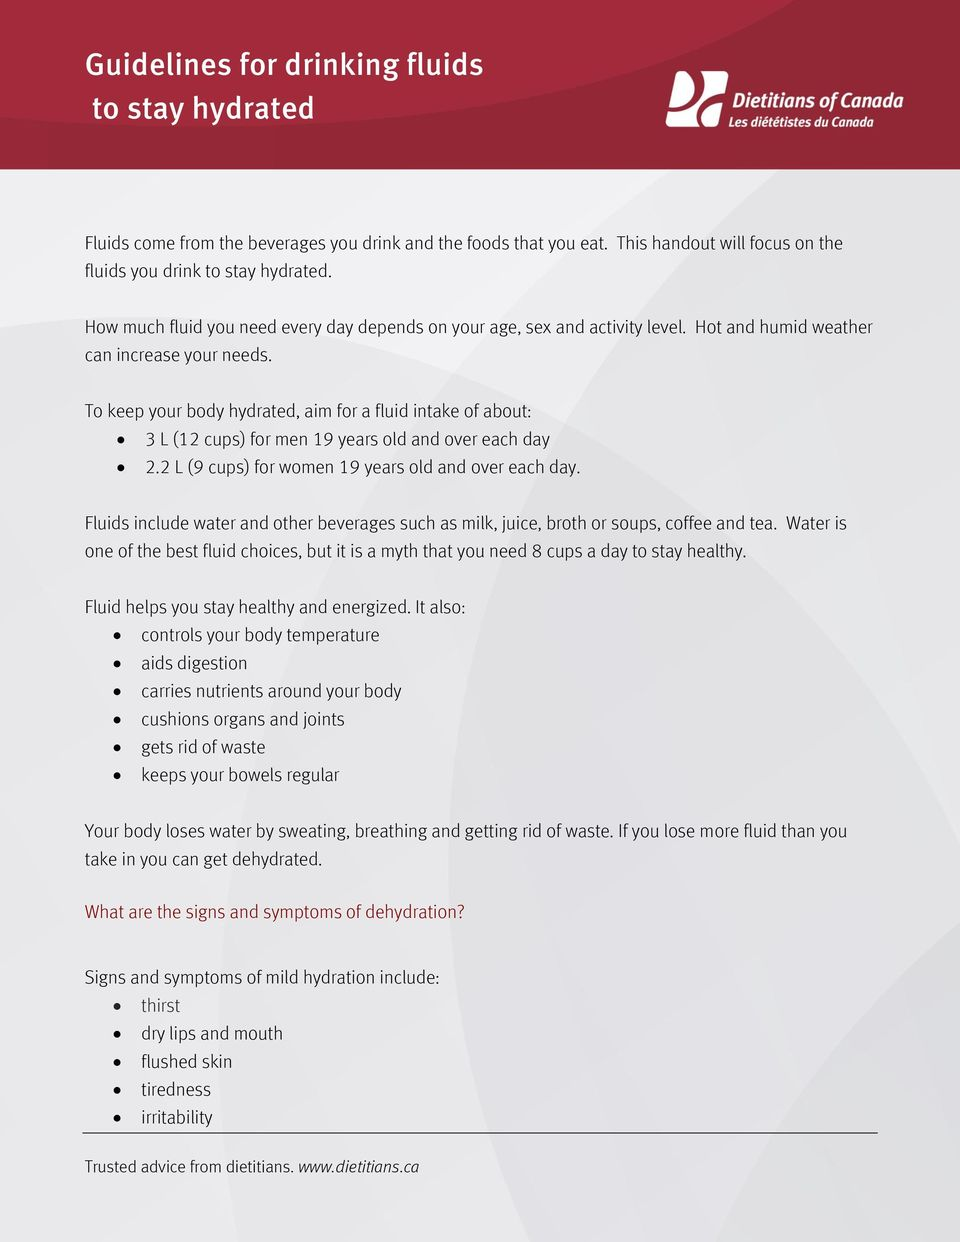 To keep your body hydrated, aim for a fluid intake of about: 3 L (12 cups) for men 19 years old and over each day 2.2 L (9 cups) for women 19 years old and over each day.